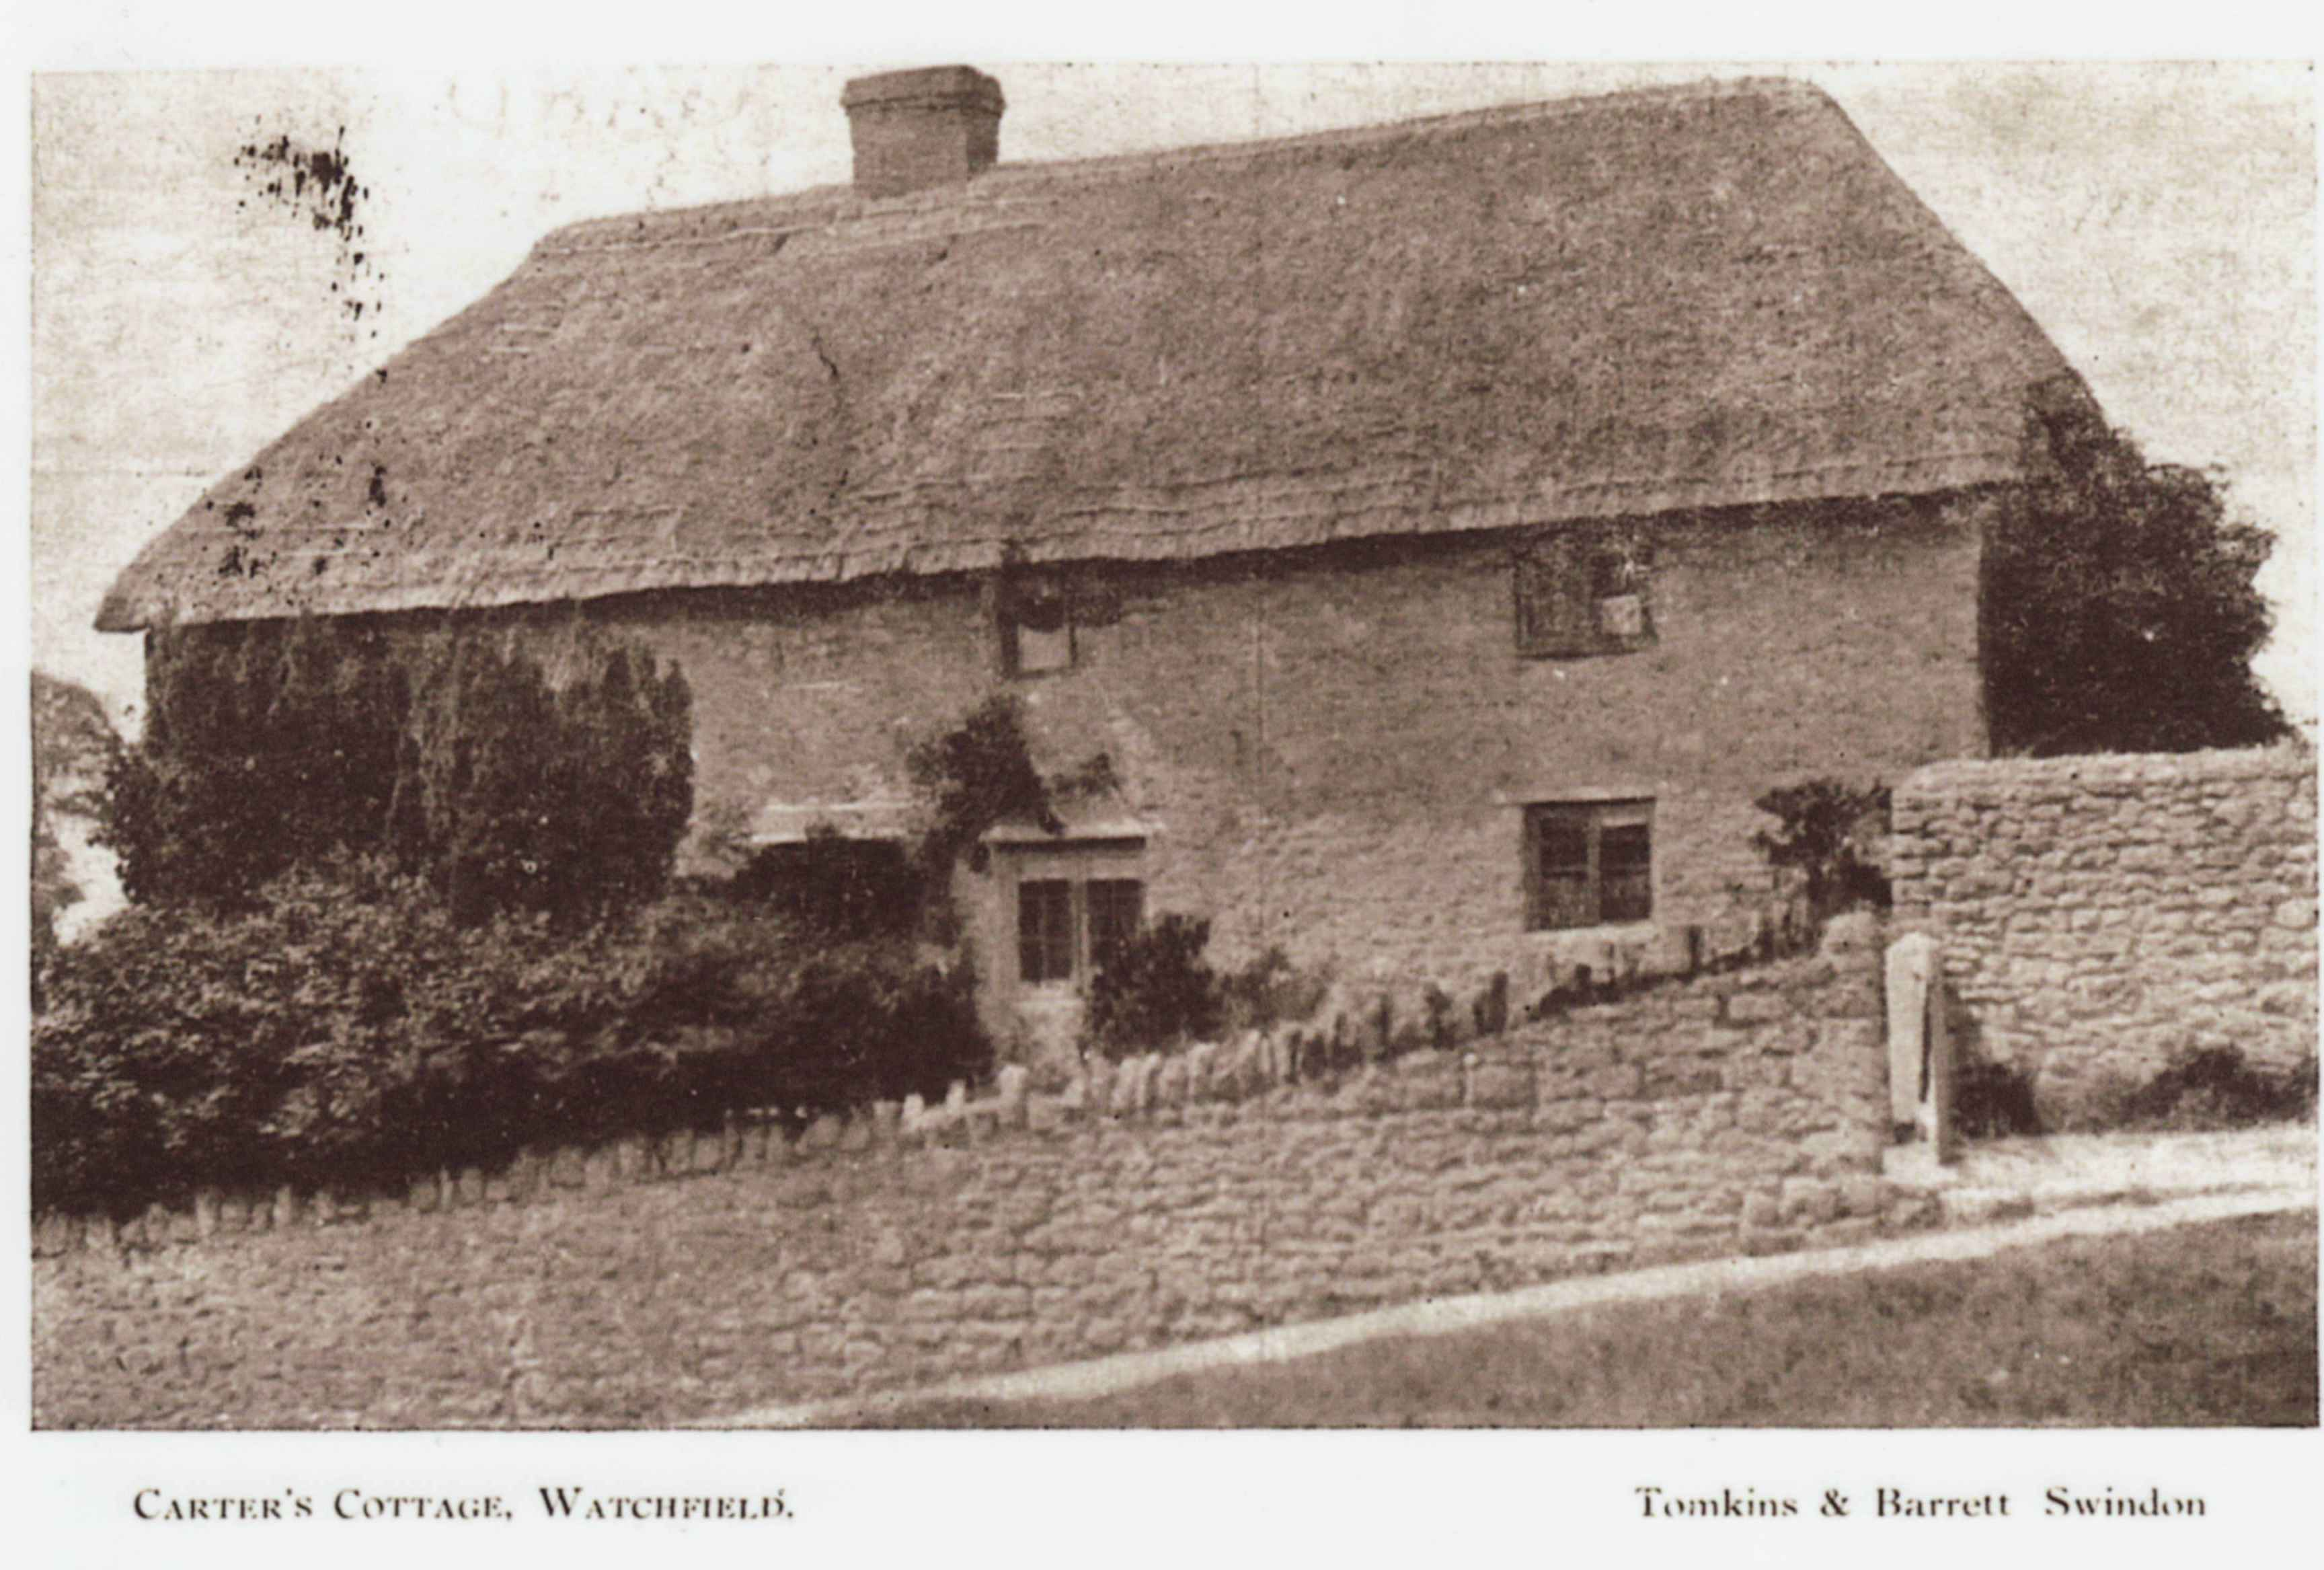 The cottage from c.1902